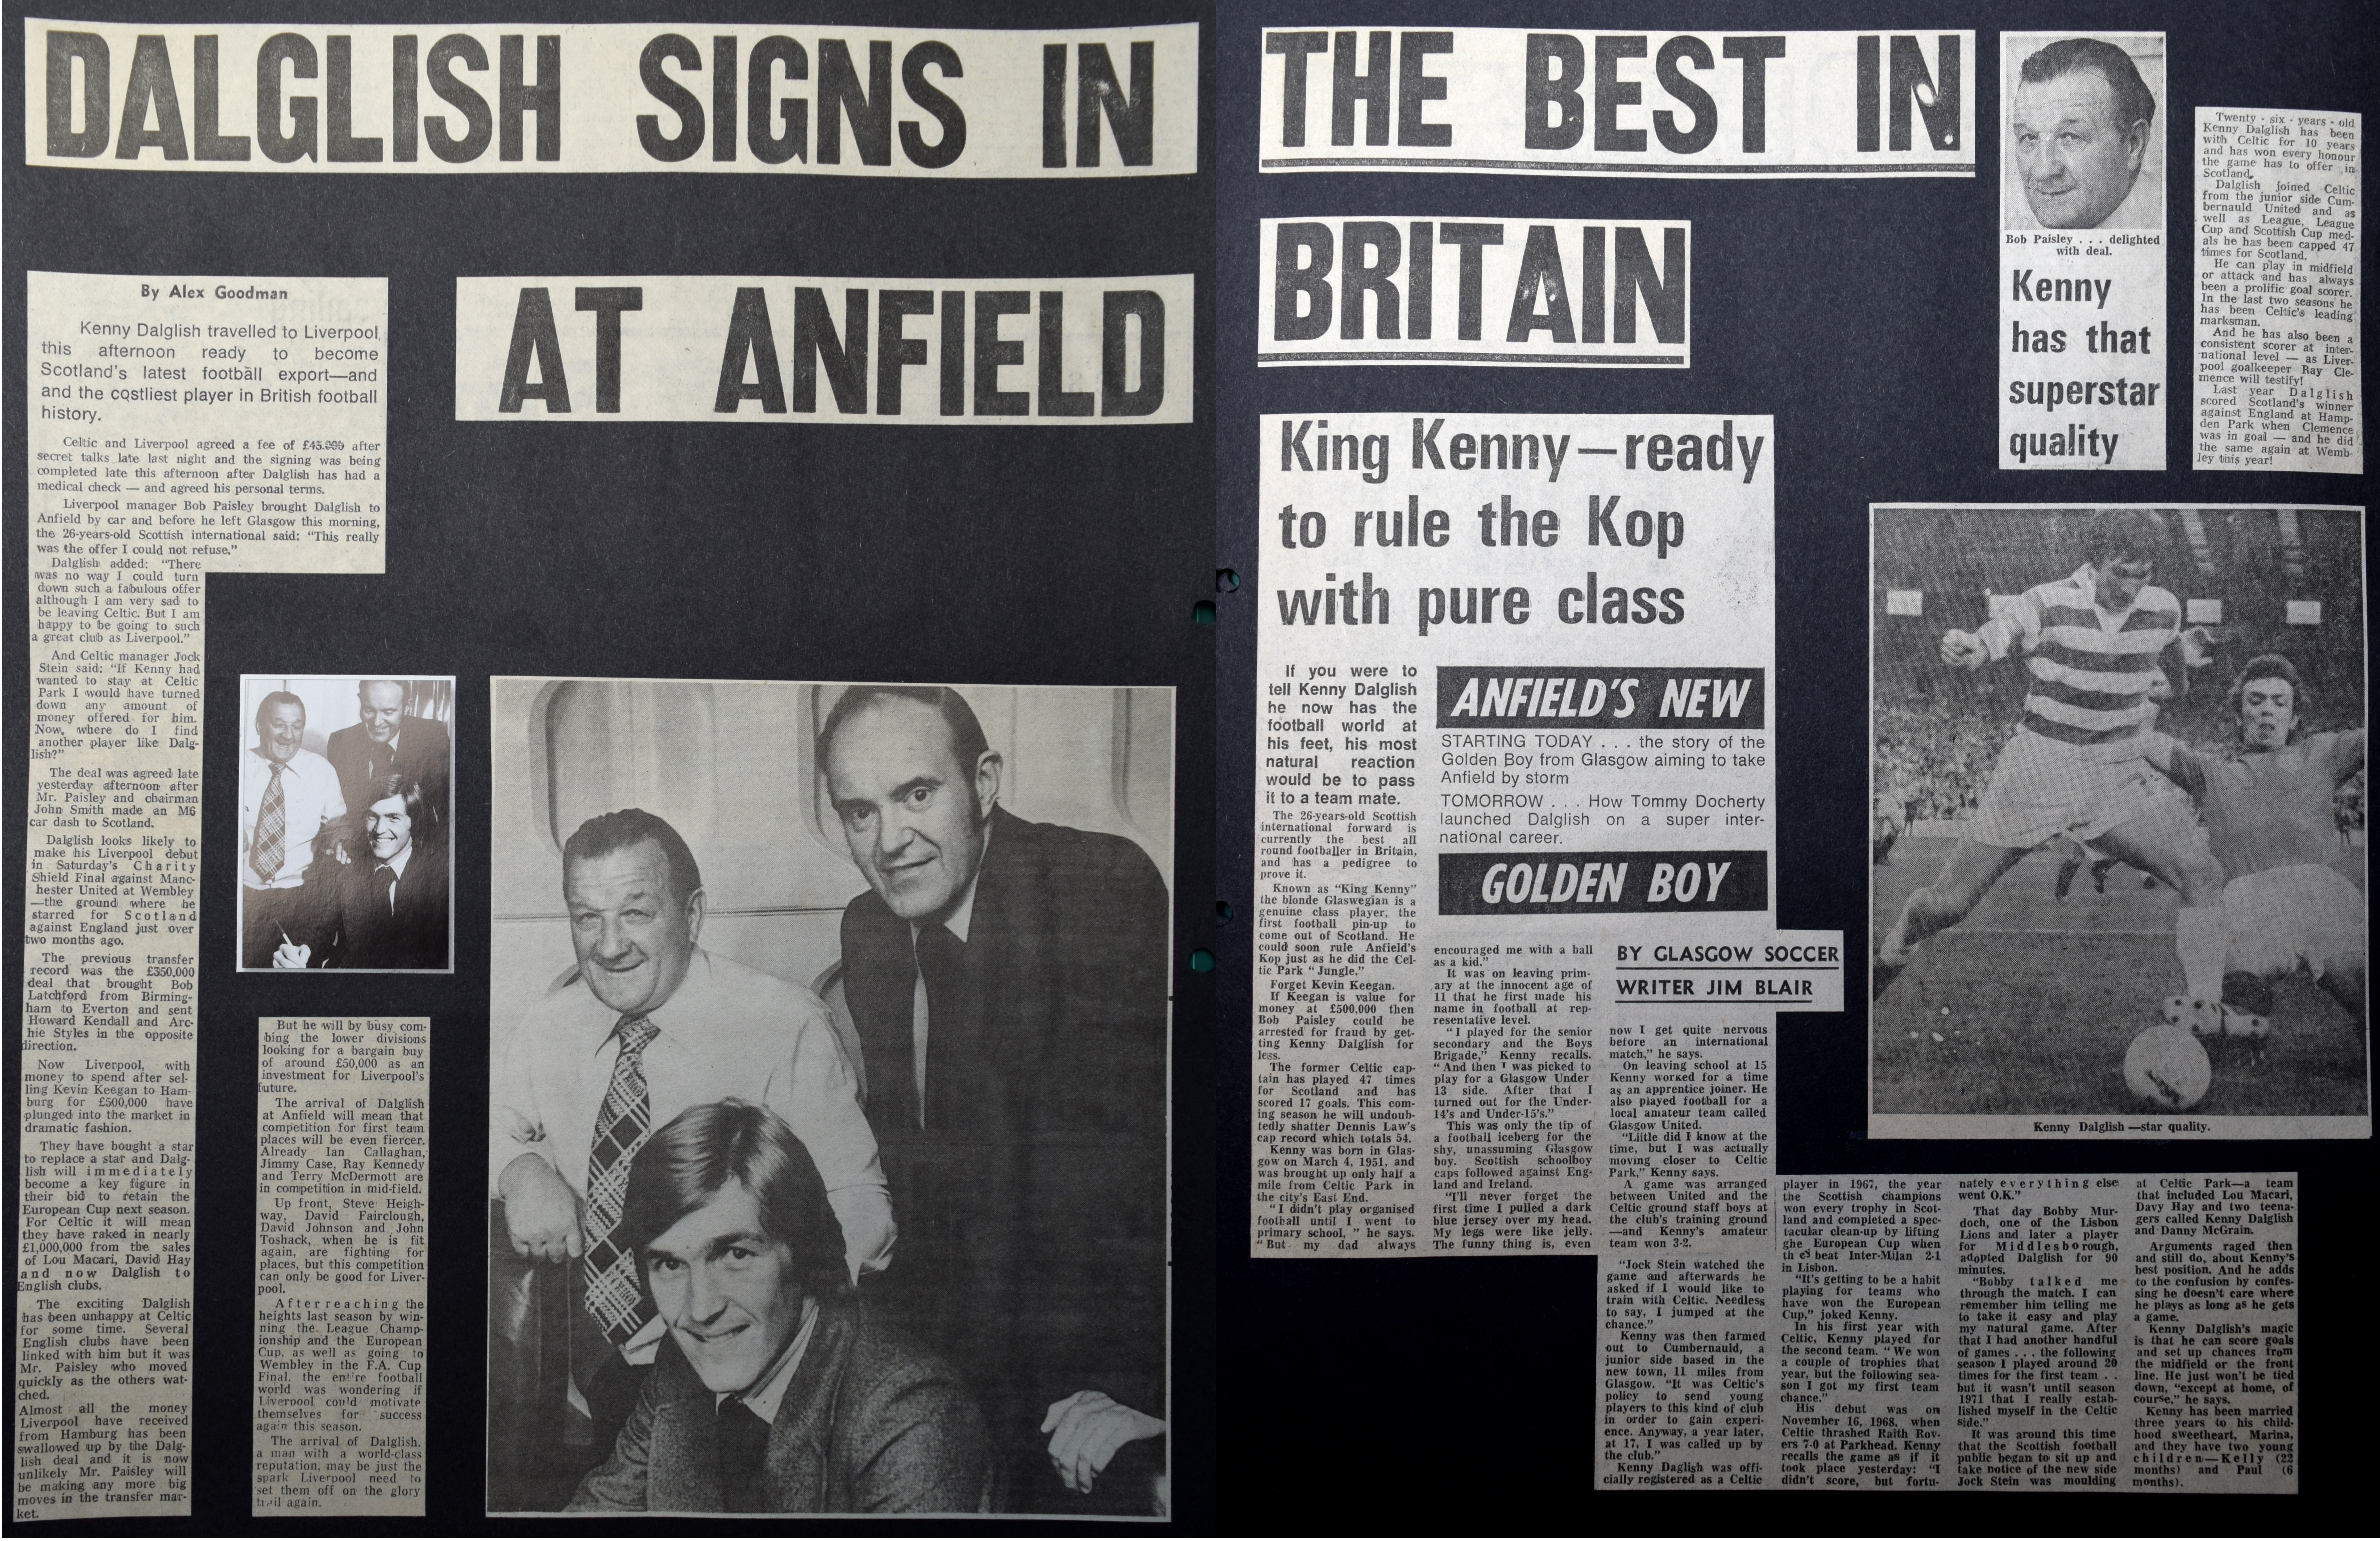 Dalglish signs in at Anfield - 10 August 1977